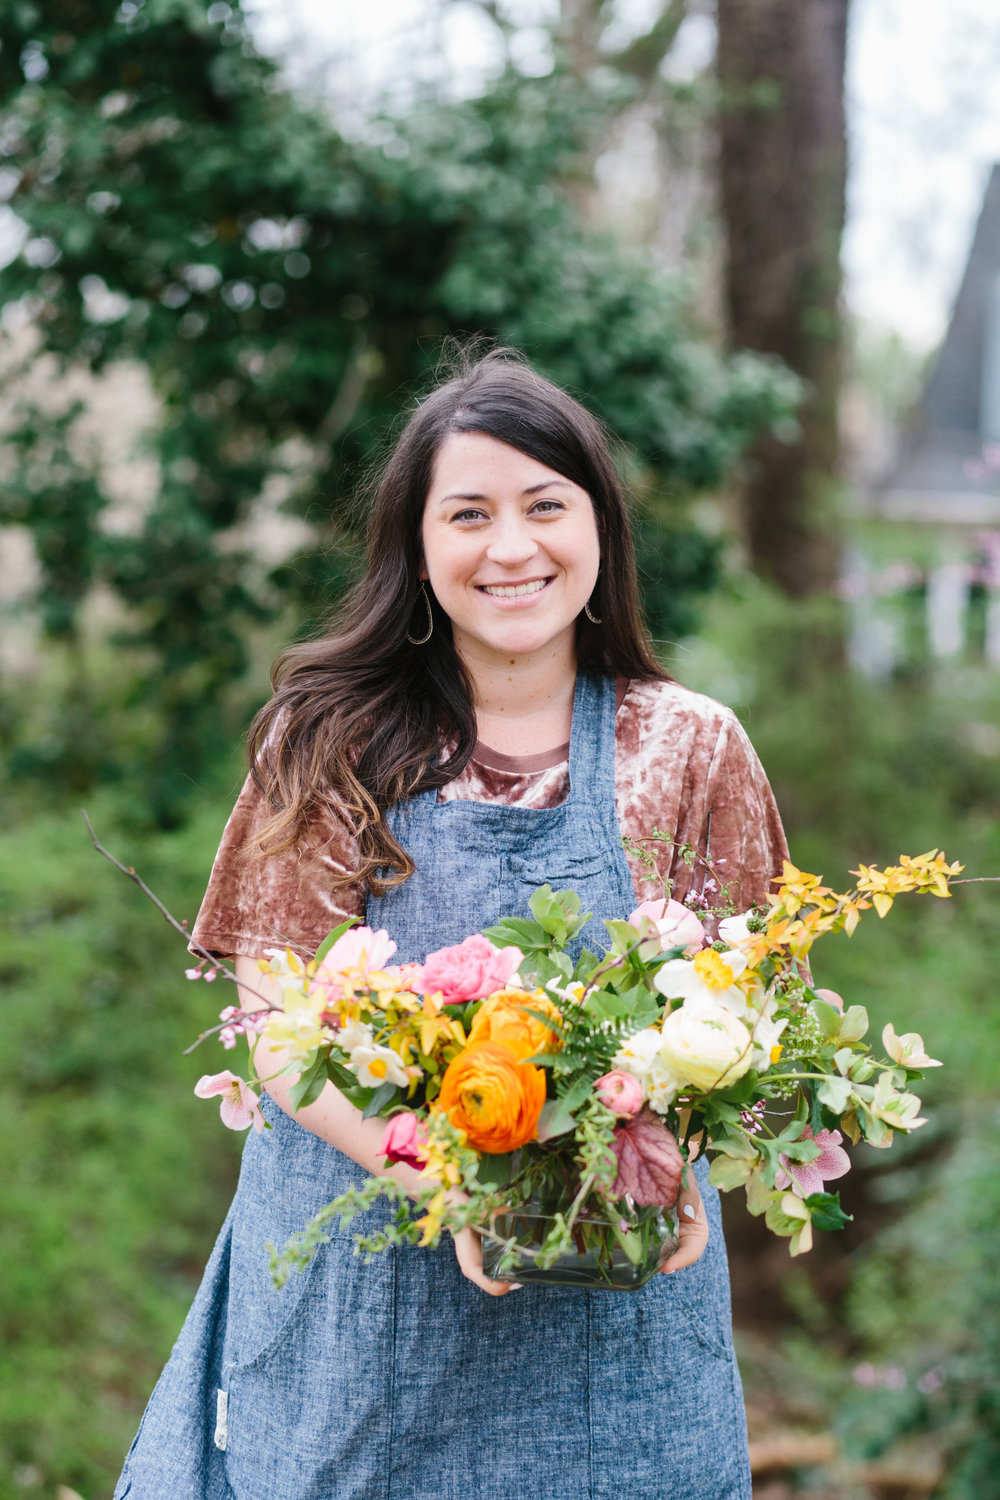 Jenna Griffin- Owner of Gold and Bloom of Atlanta